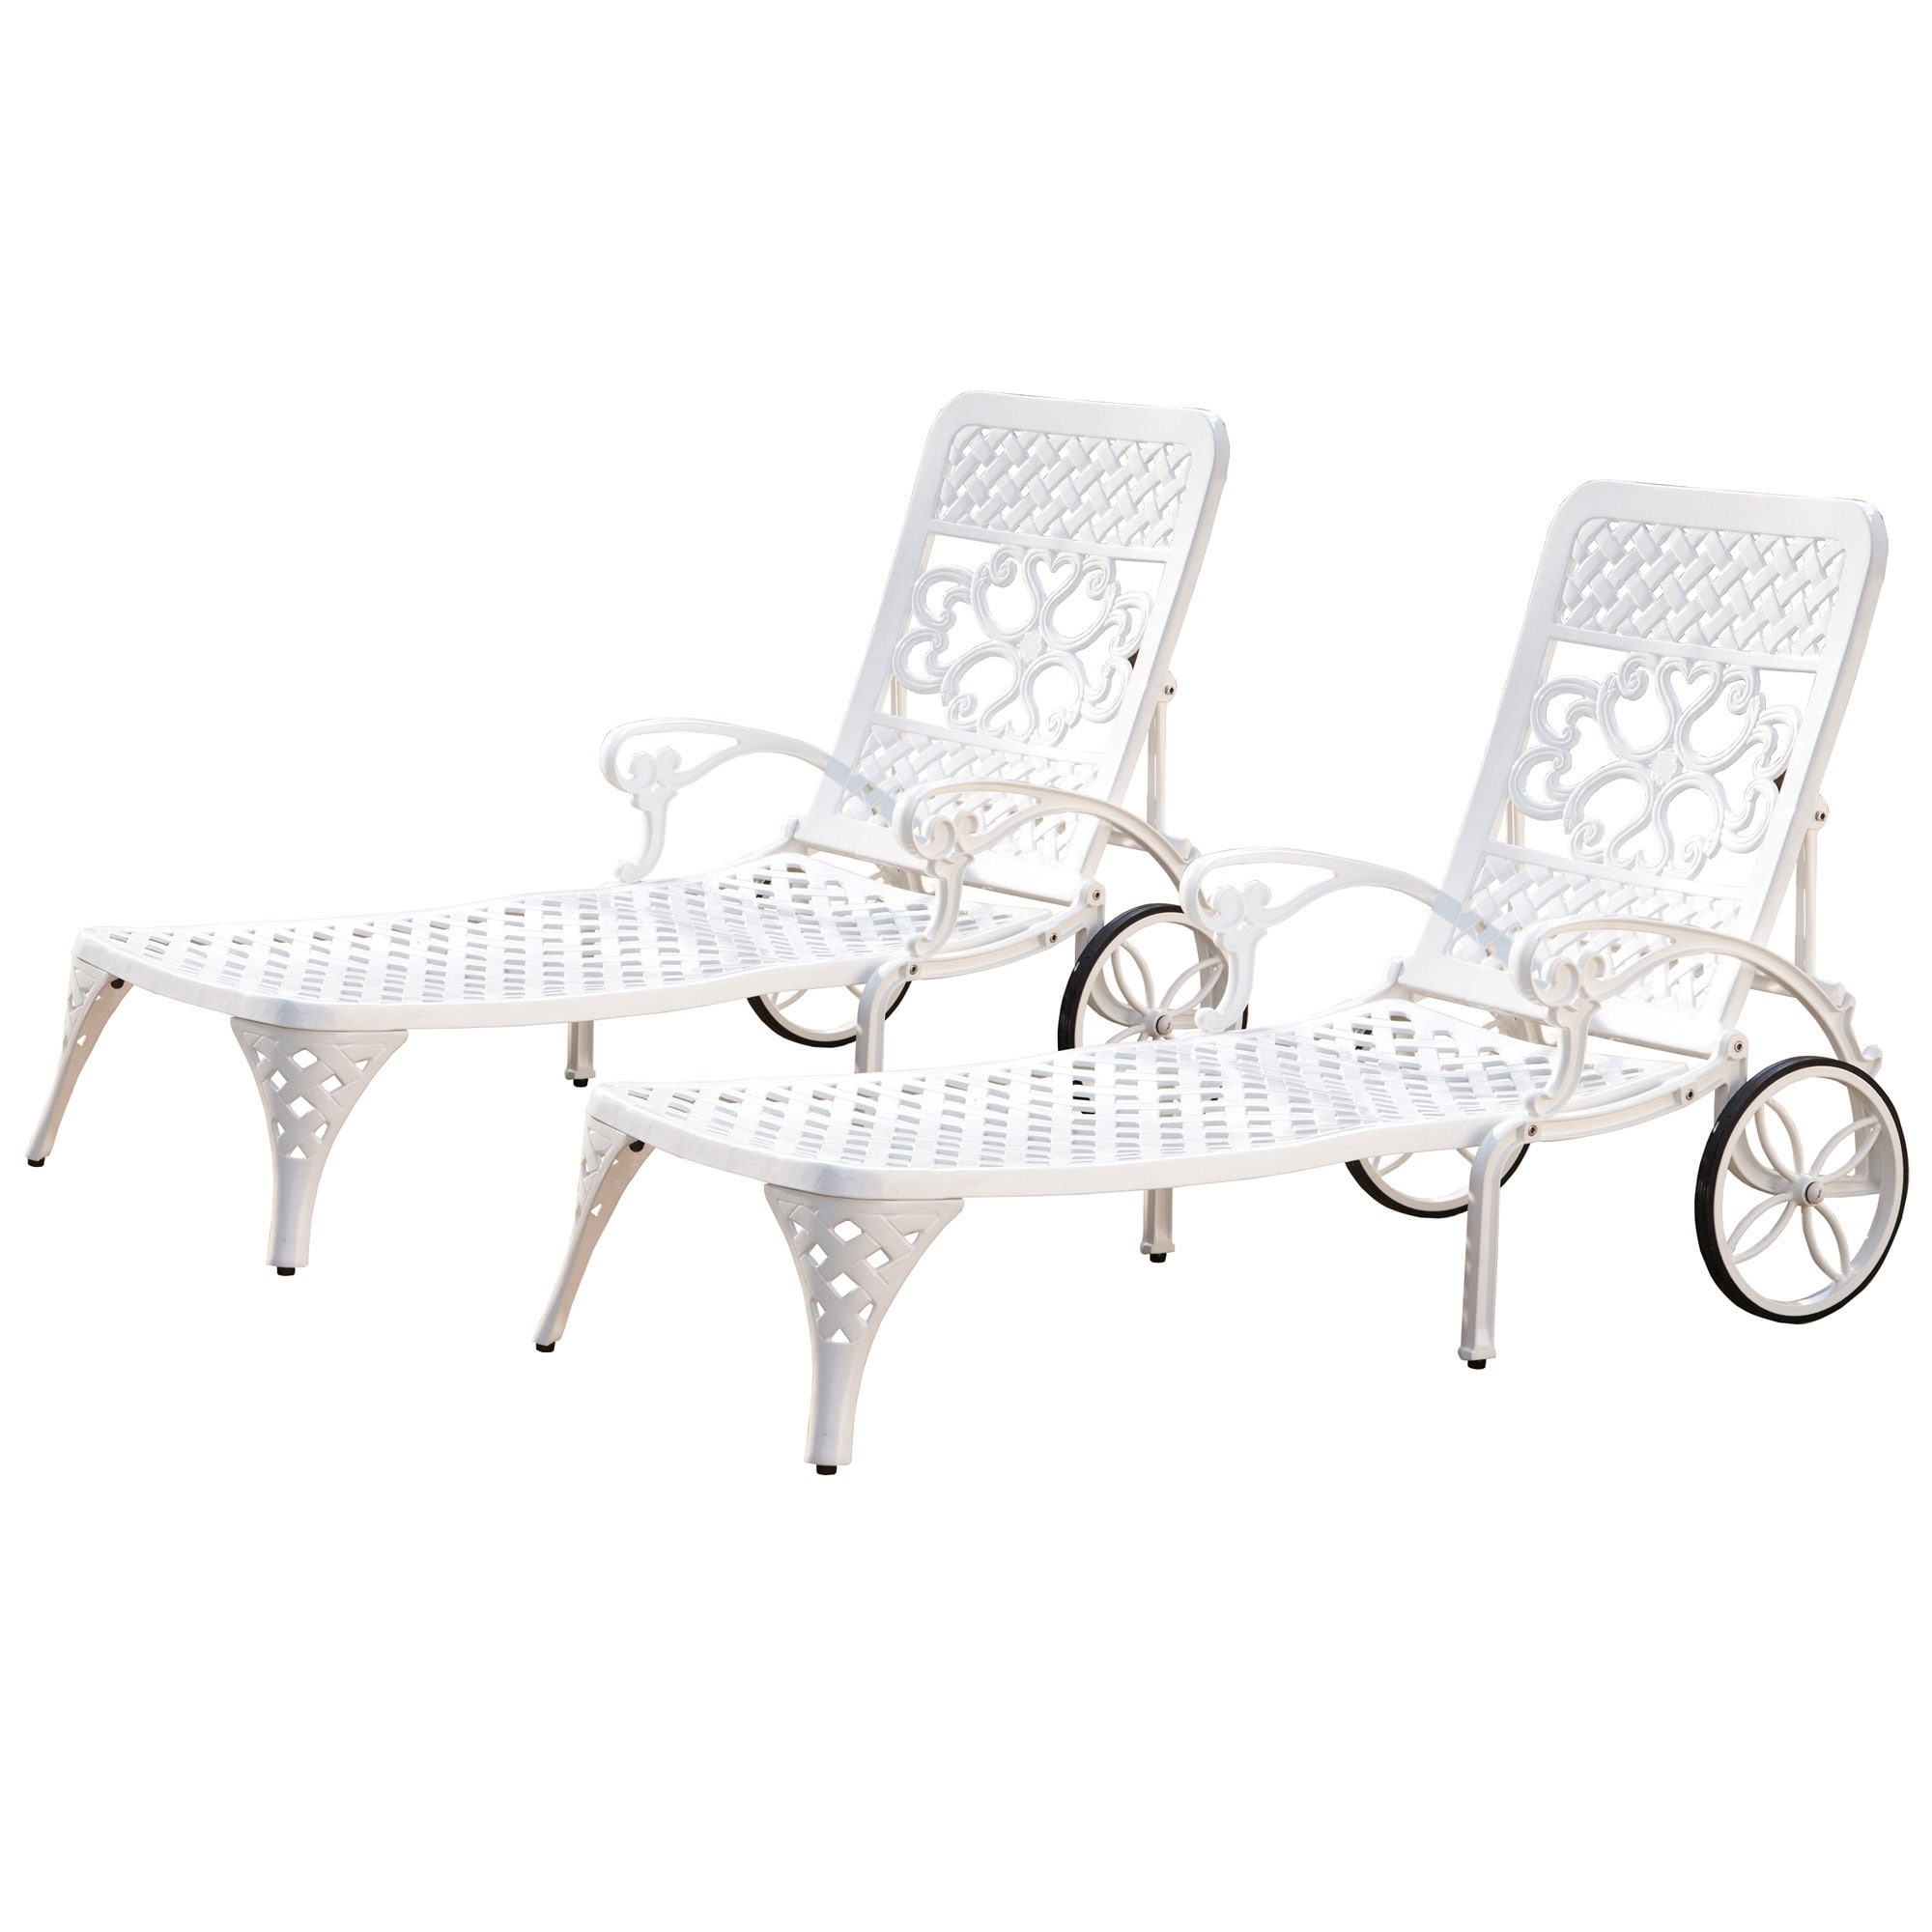 Overstock Outdoor Chaise Lounge Chairs Pertaining To Latest Gracewood Hollow Rasmussen Chaise Lounge Chairs (Set Of 2) – Free (View 12 of 15)